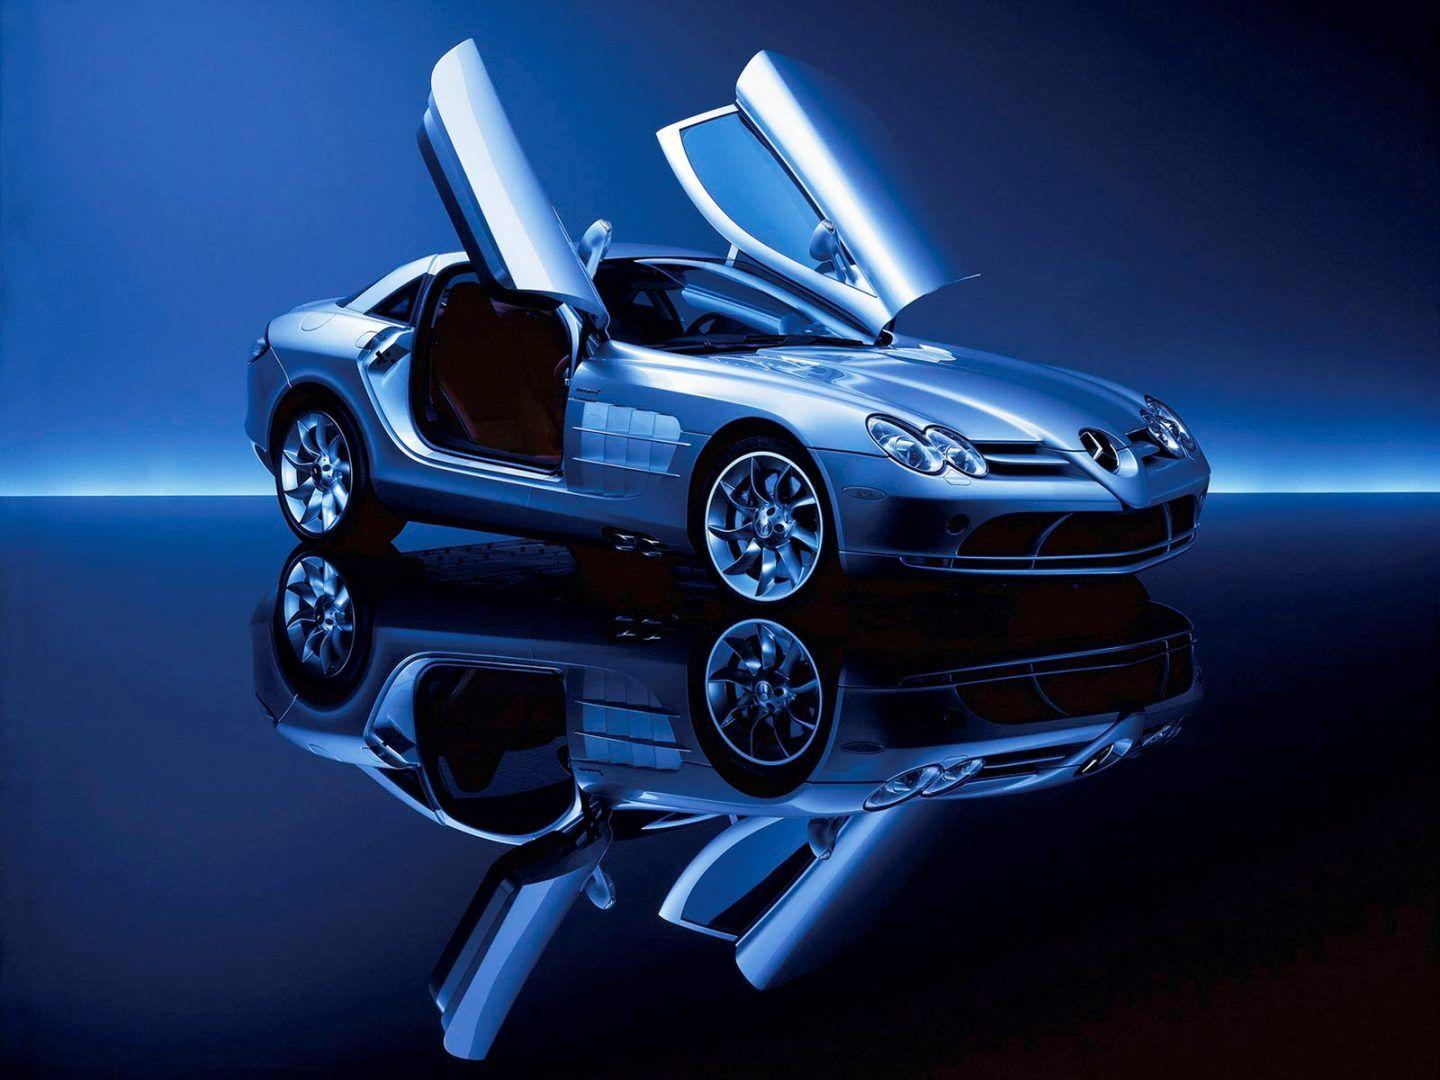 Mercedes-Benz Stylish Luxury HD Wallpapers Free Download for ...